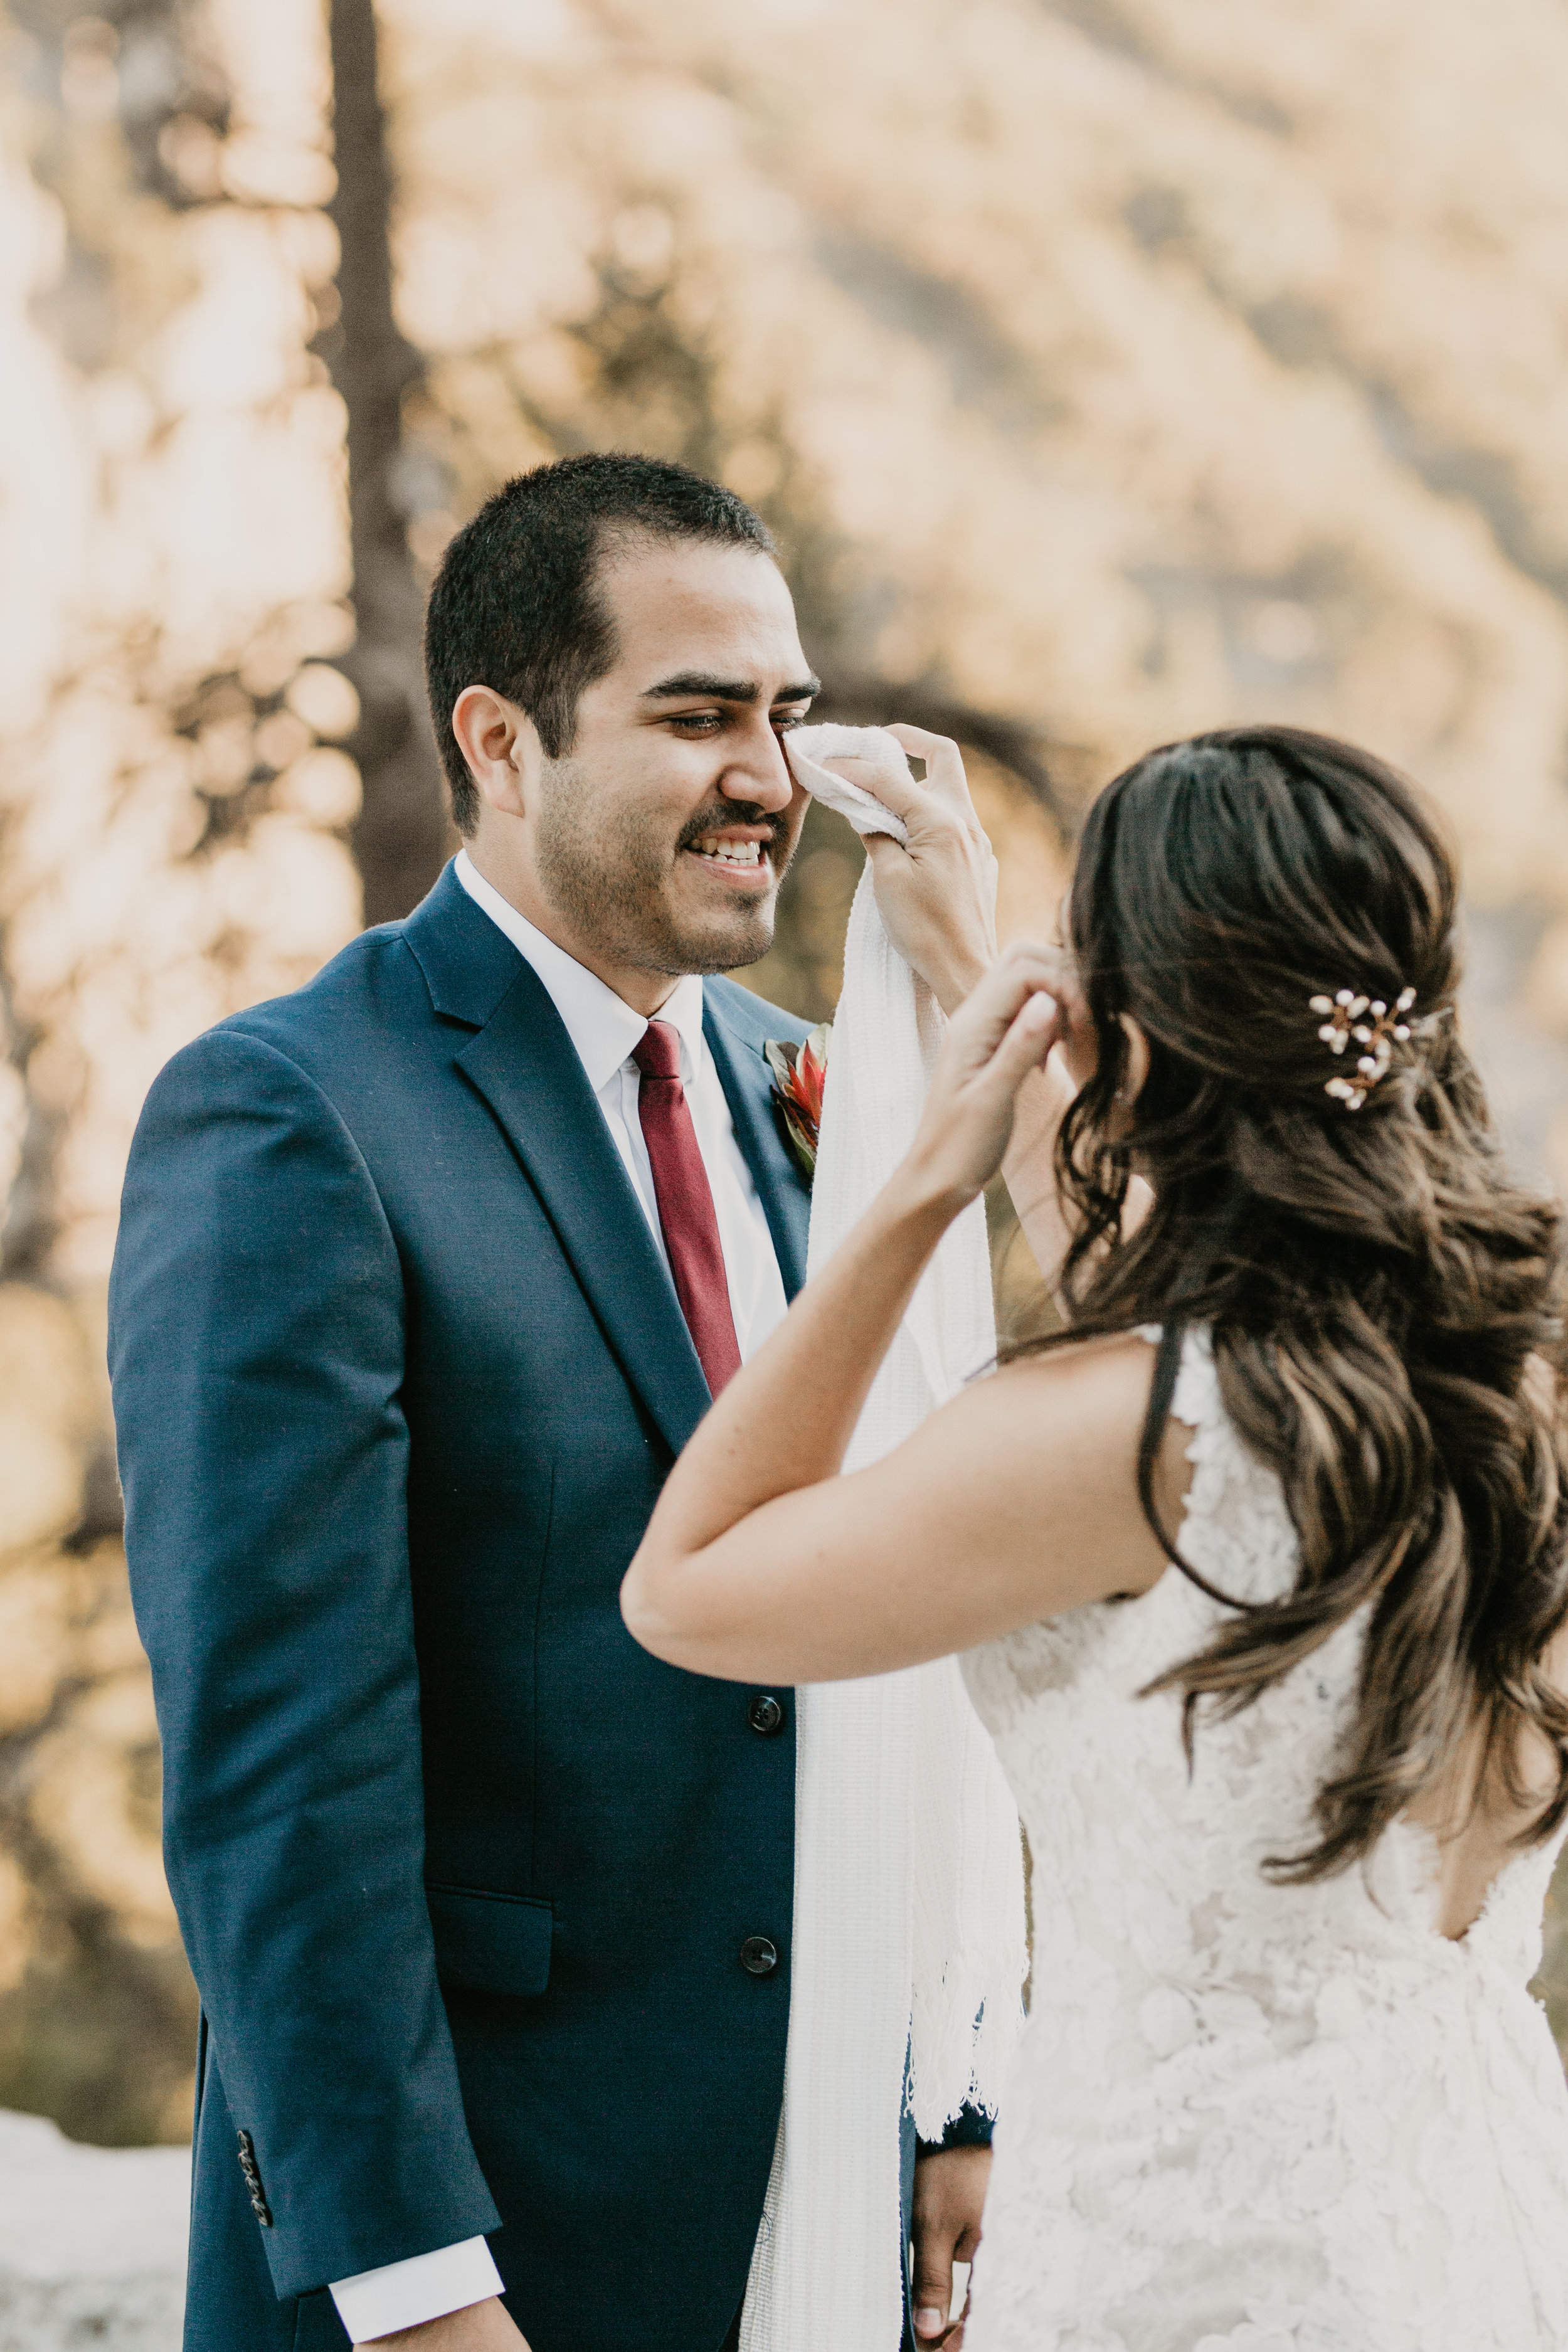 nicole-daacke-photography-intimate-elopement-wedding-yosemite-national-park-california-taft-point-sunset-photos-yosemite-valley-tunnel-view-first-look-sunrise-golden-granite-hiking-adventure-wedding-adventurous-elopement-photographer-4.jpg